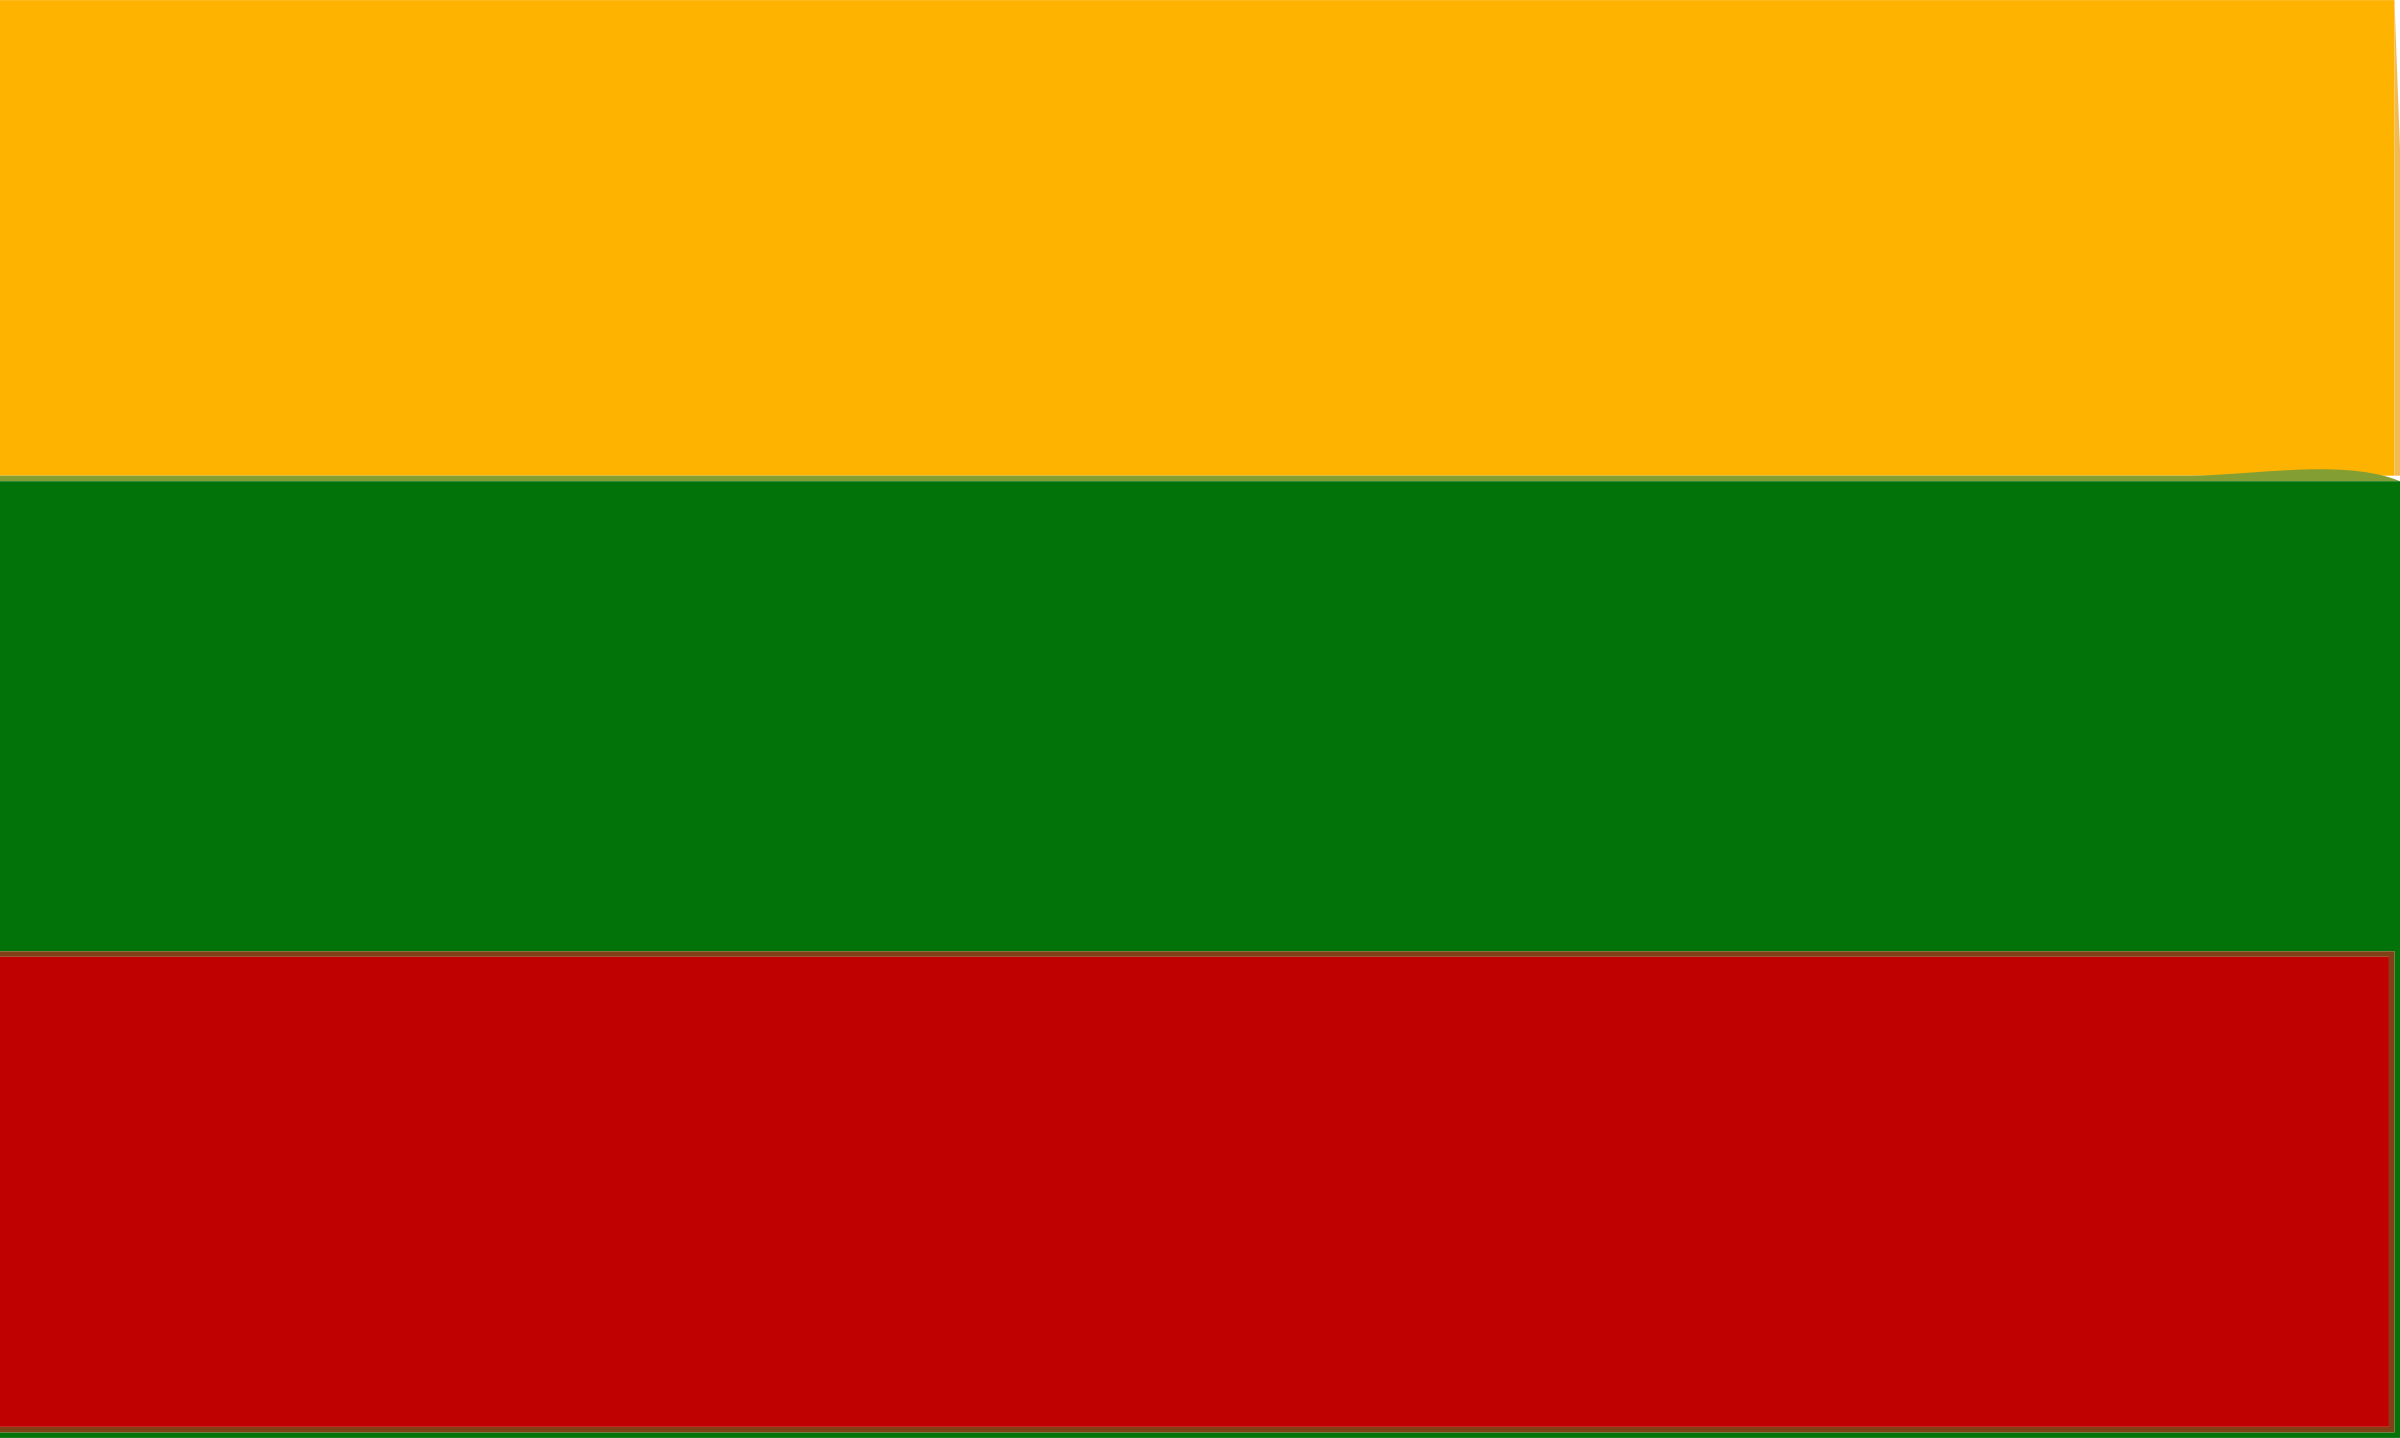 Flag of Lithuania by Joesph